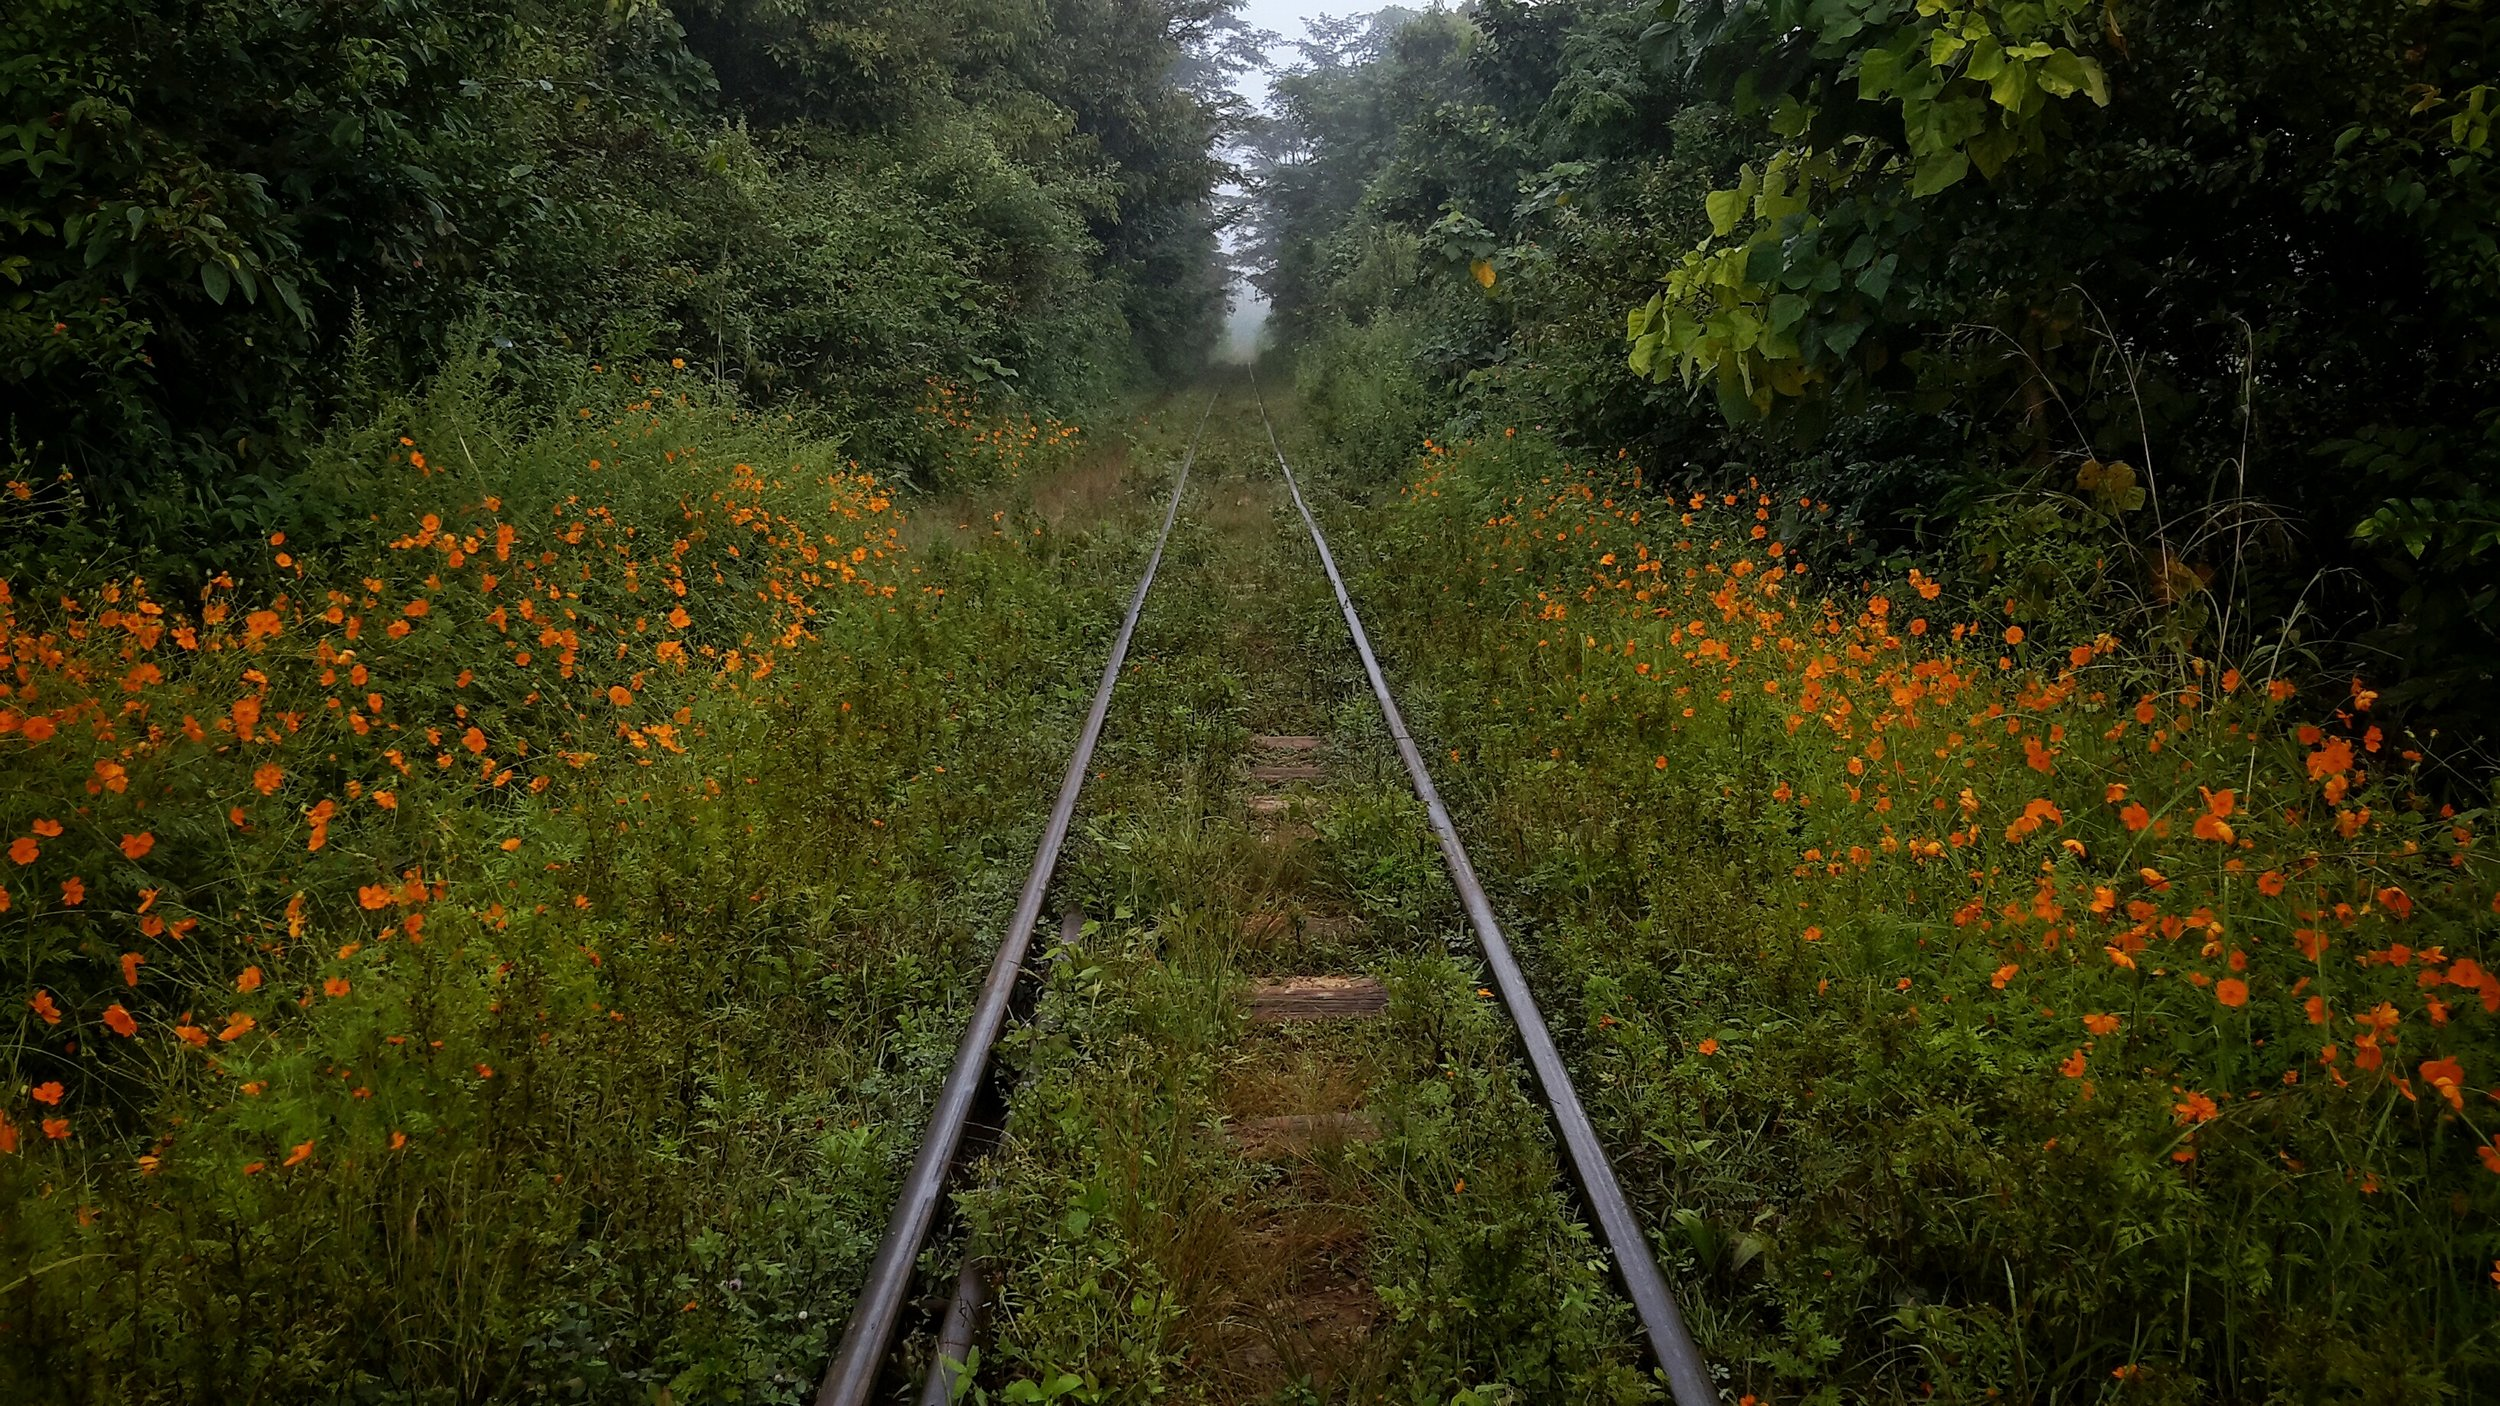 Train tracks in Kalaw, Shan State